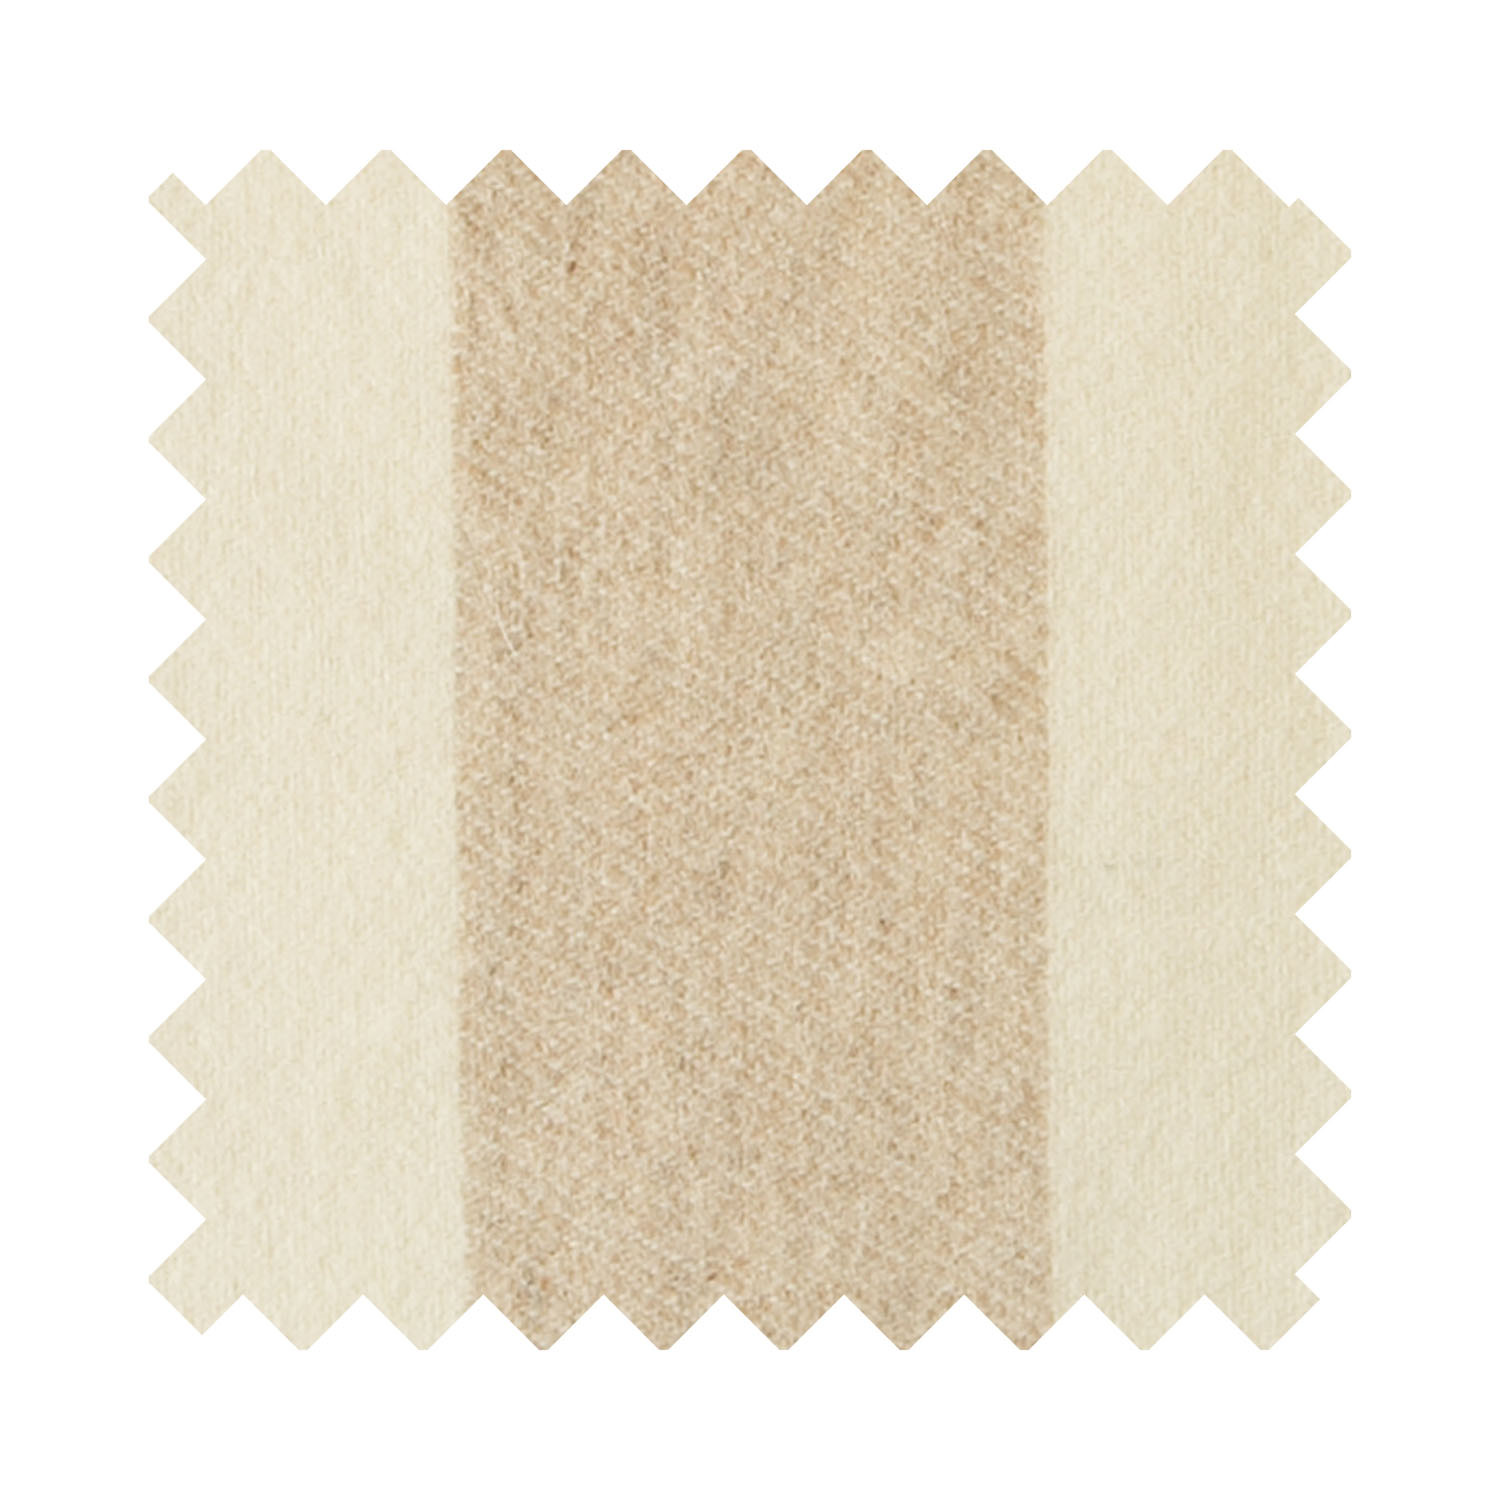 Broadstripe Oatmeal Sample Swatch